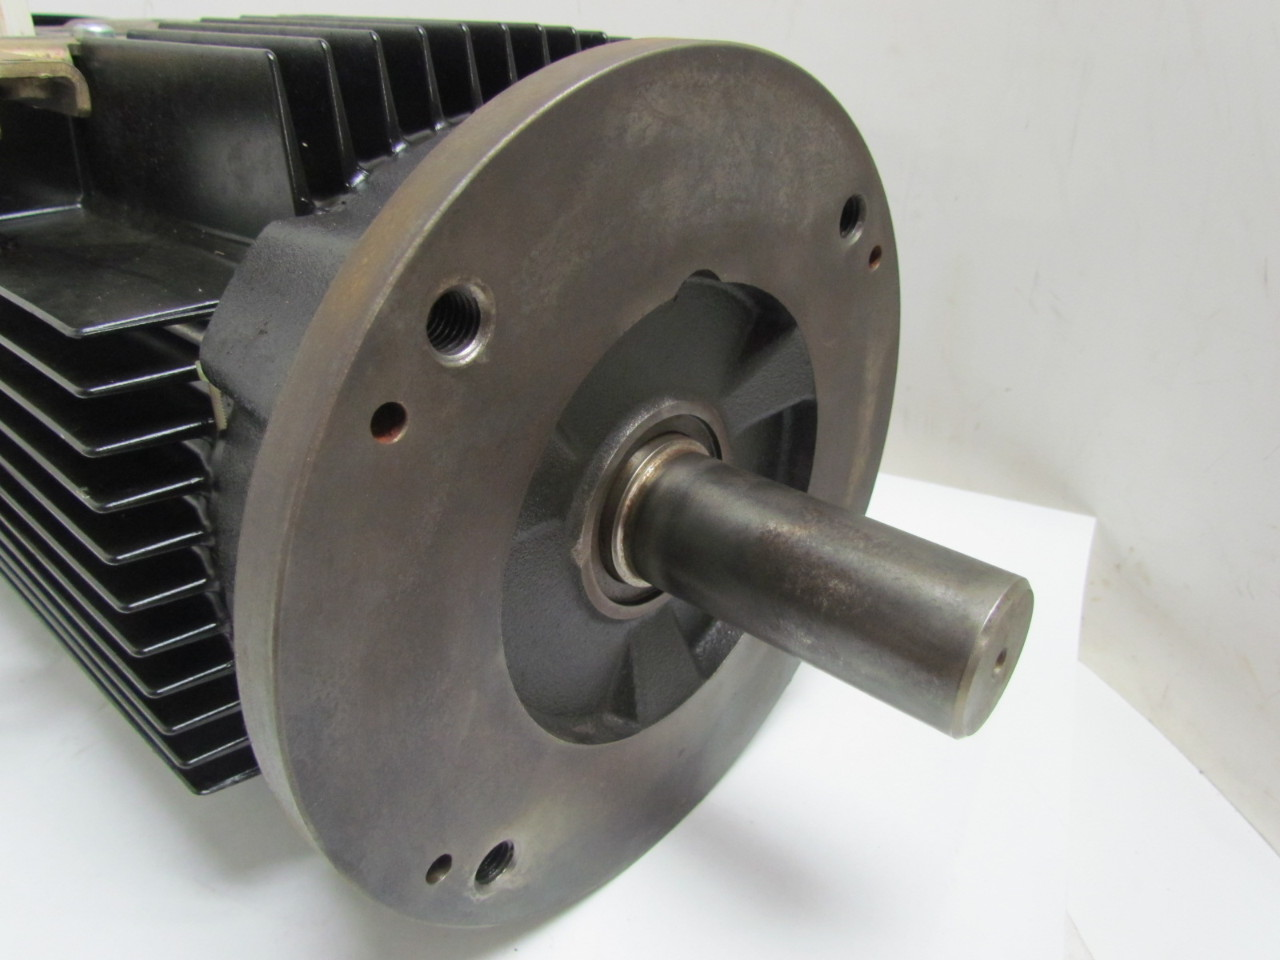 Grudfos ml132sc 2 ff265 d1 85759417 electric pump motor 7 for 1 1 2 hp electric motor